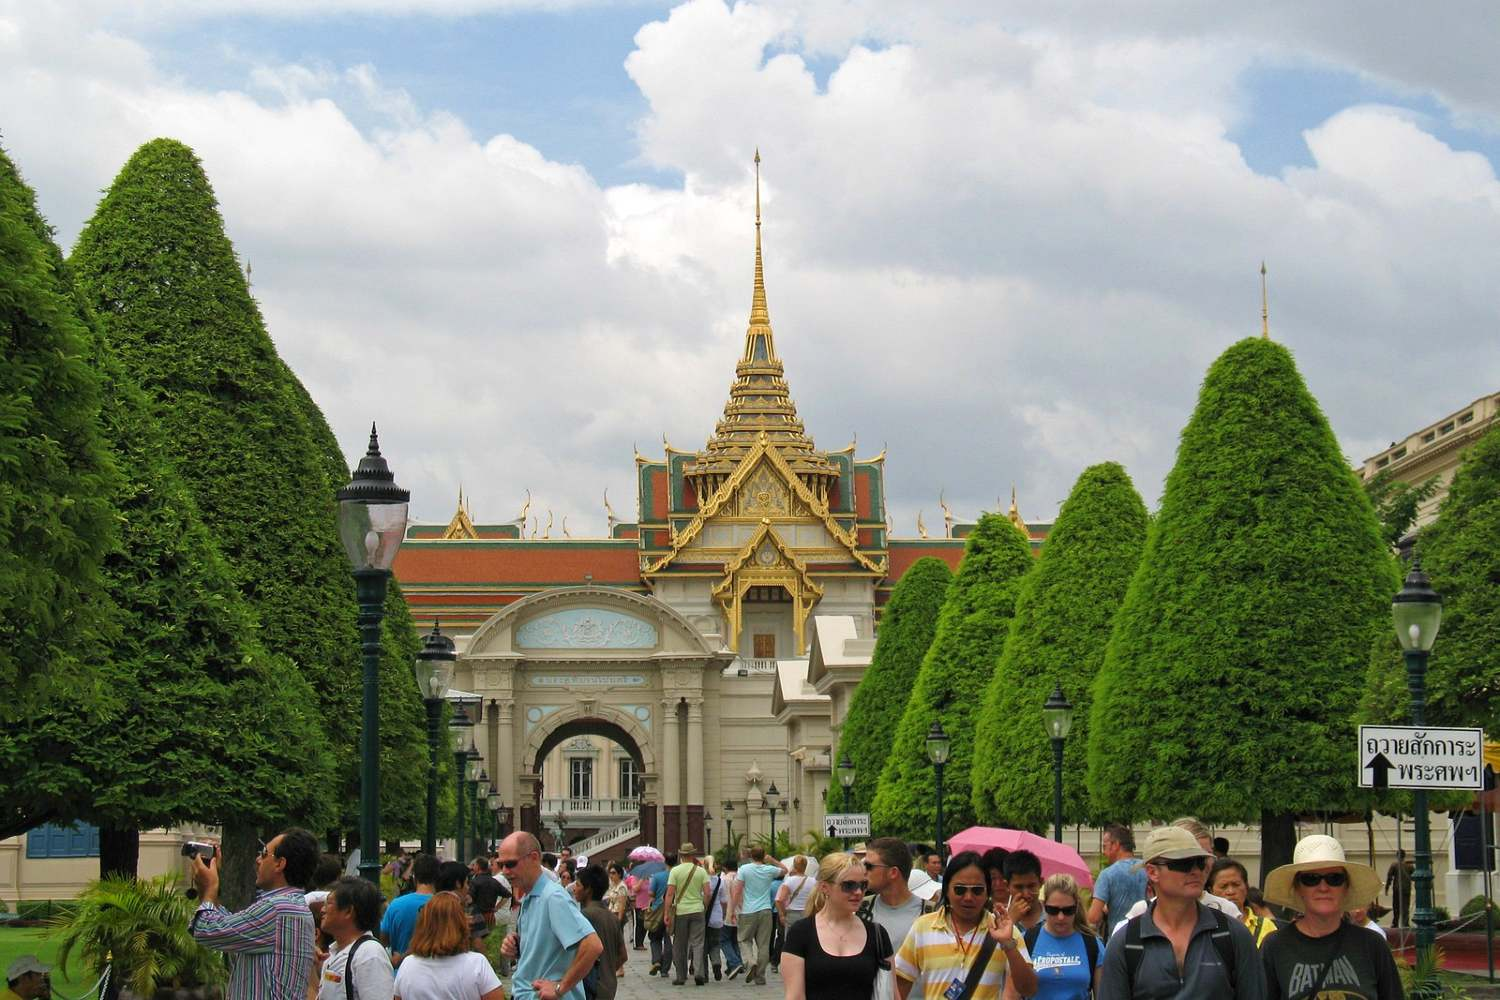 Hustle and bustle at the Grand Palace in Bangkok, Thailand